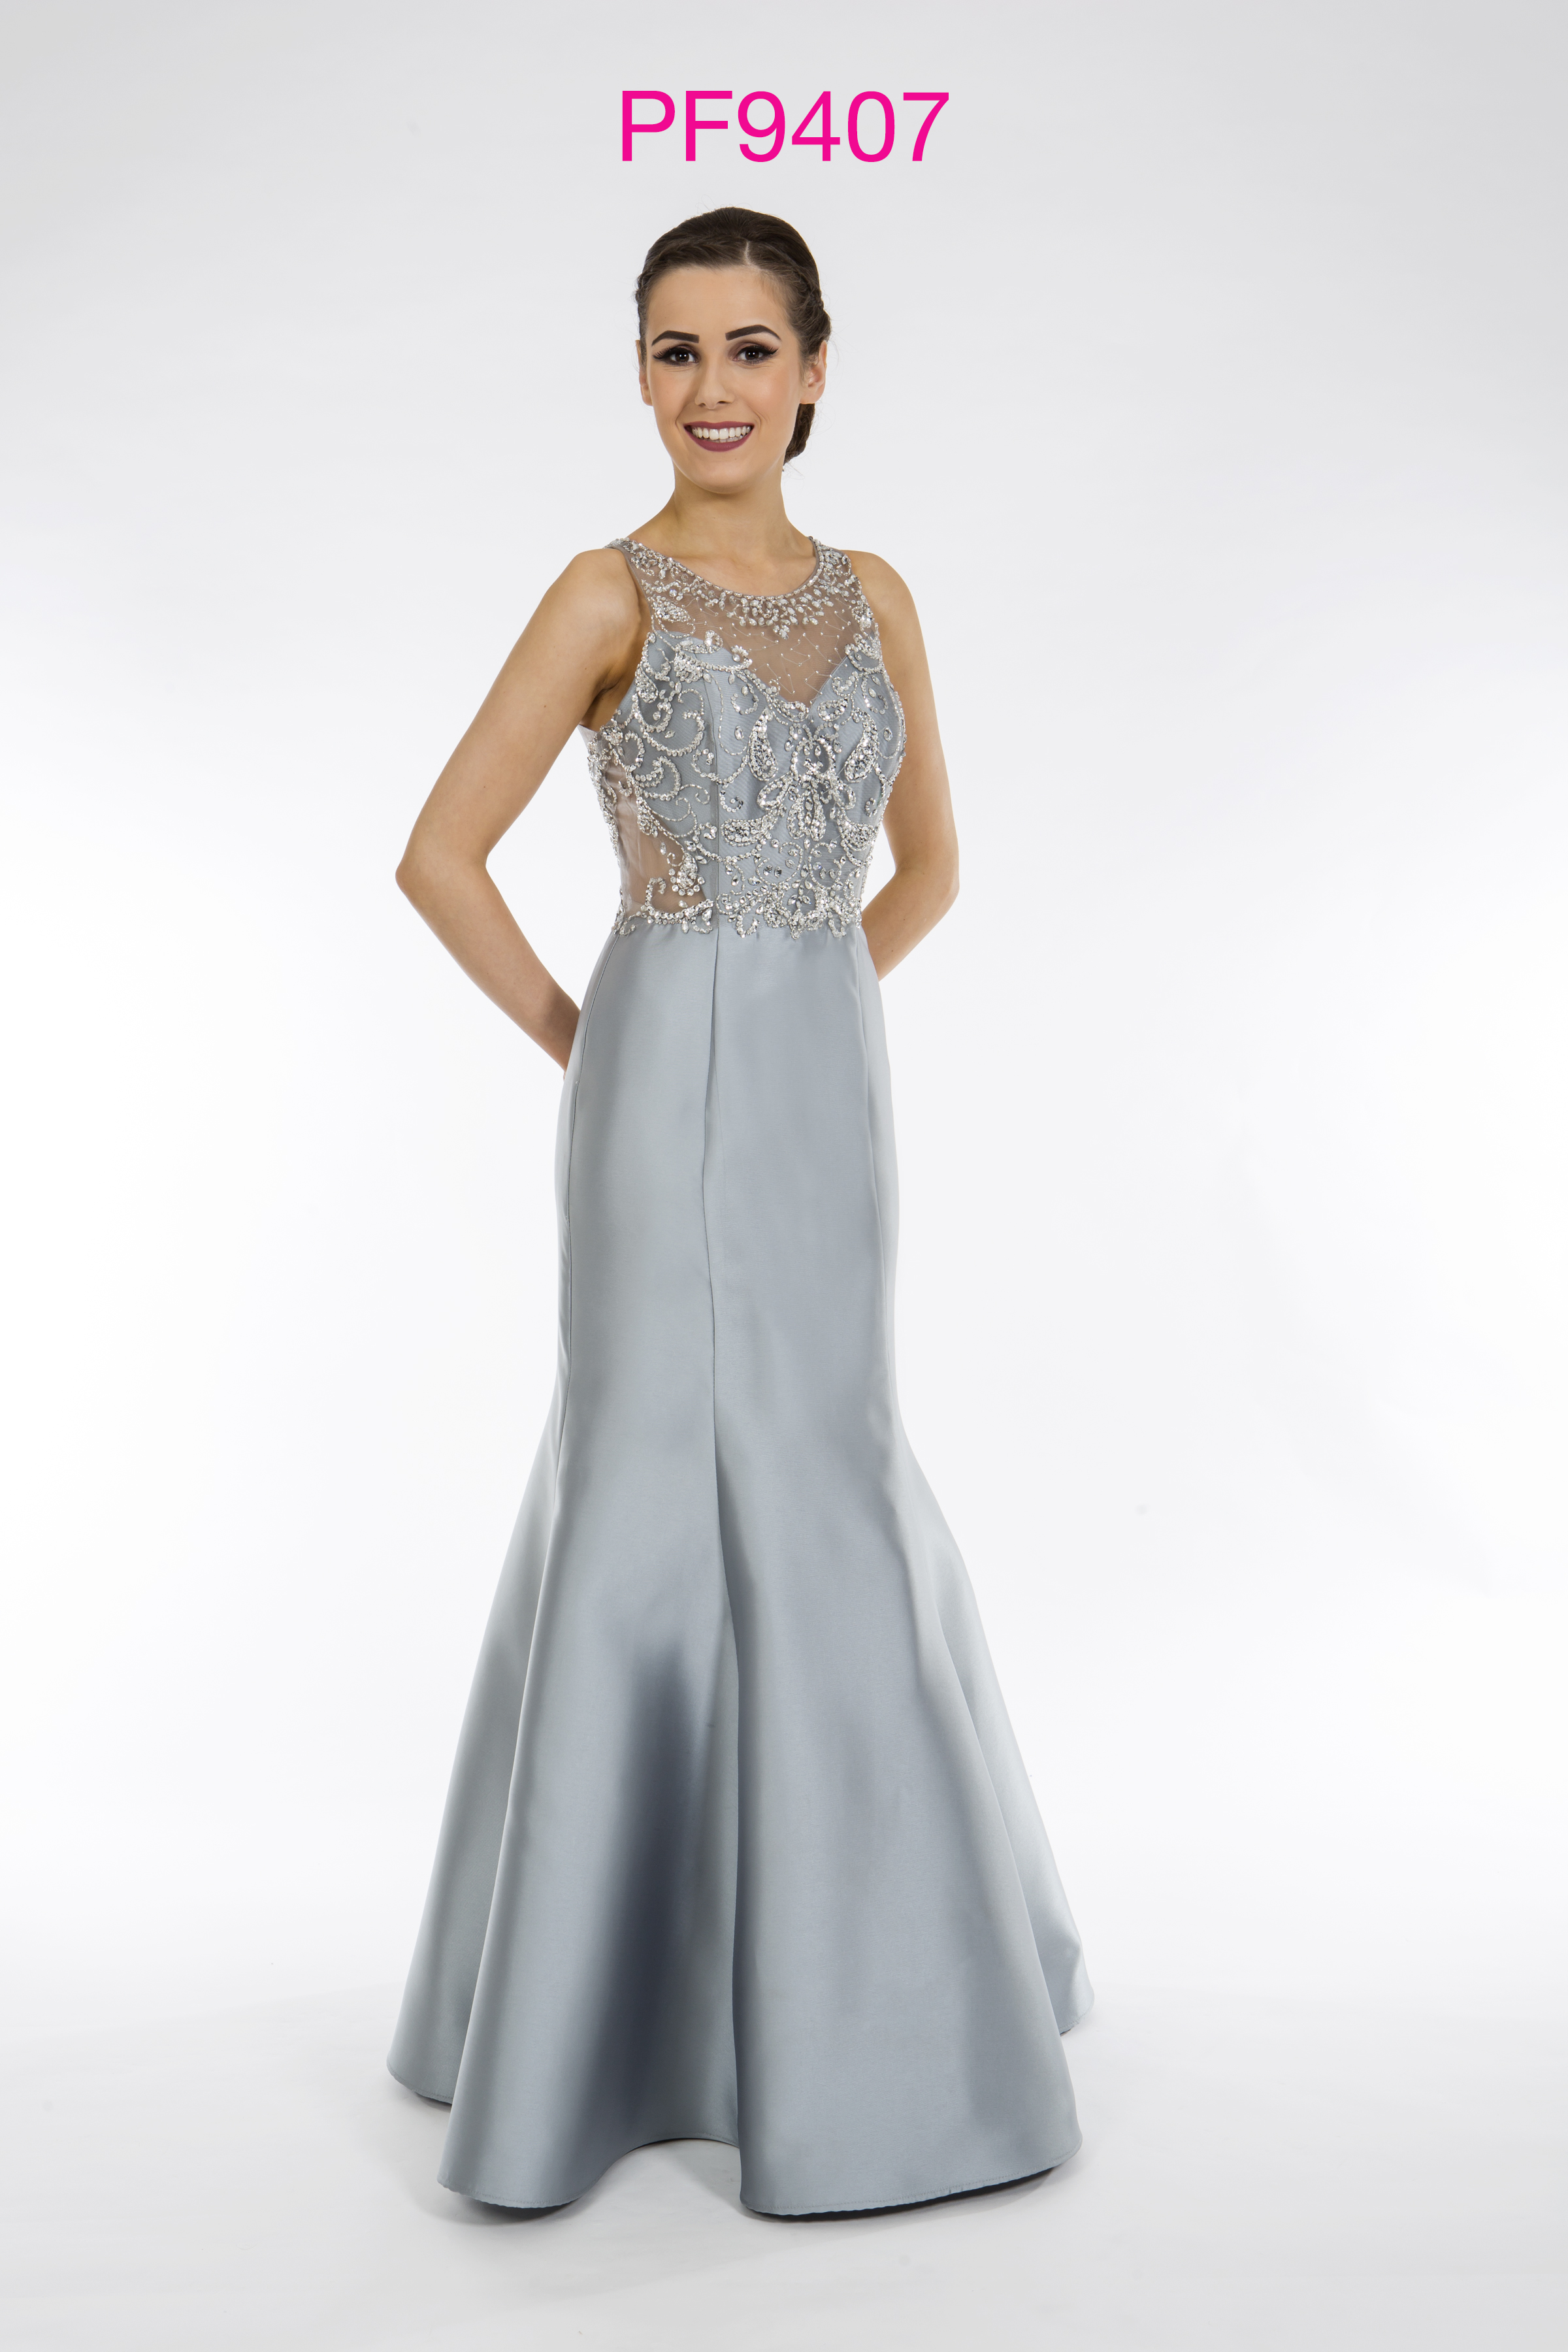 Grey, Pewter and Gunmetal Archives - Prom Frocks UK Prom Dresses